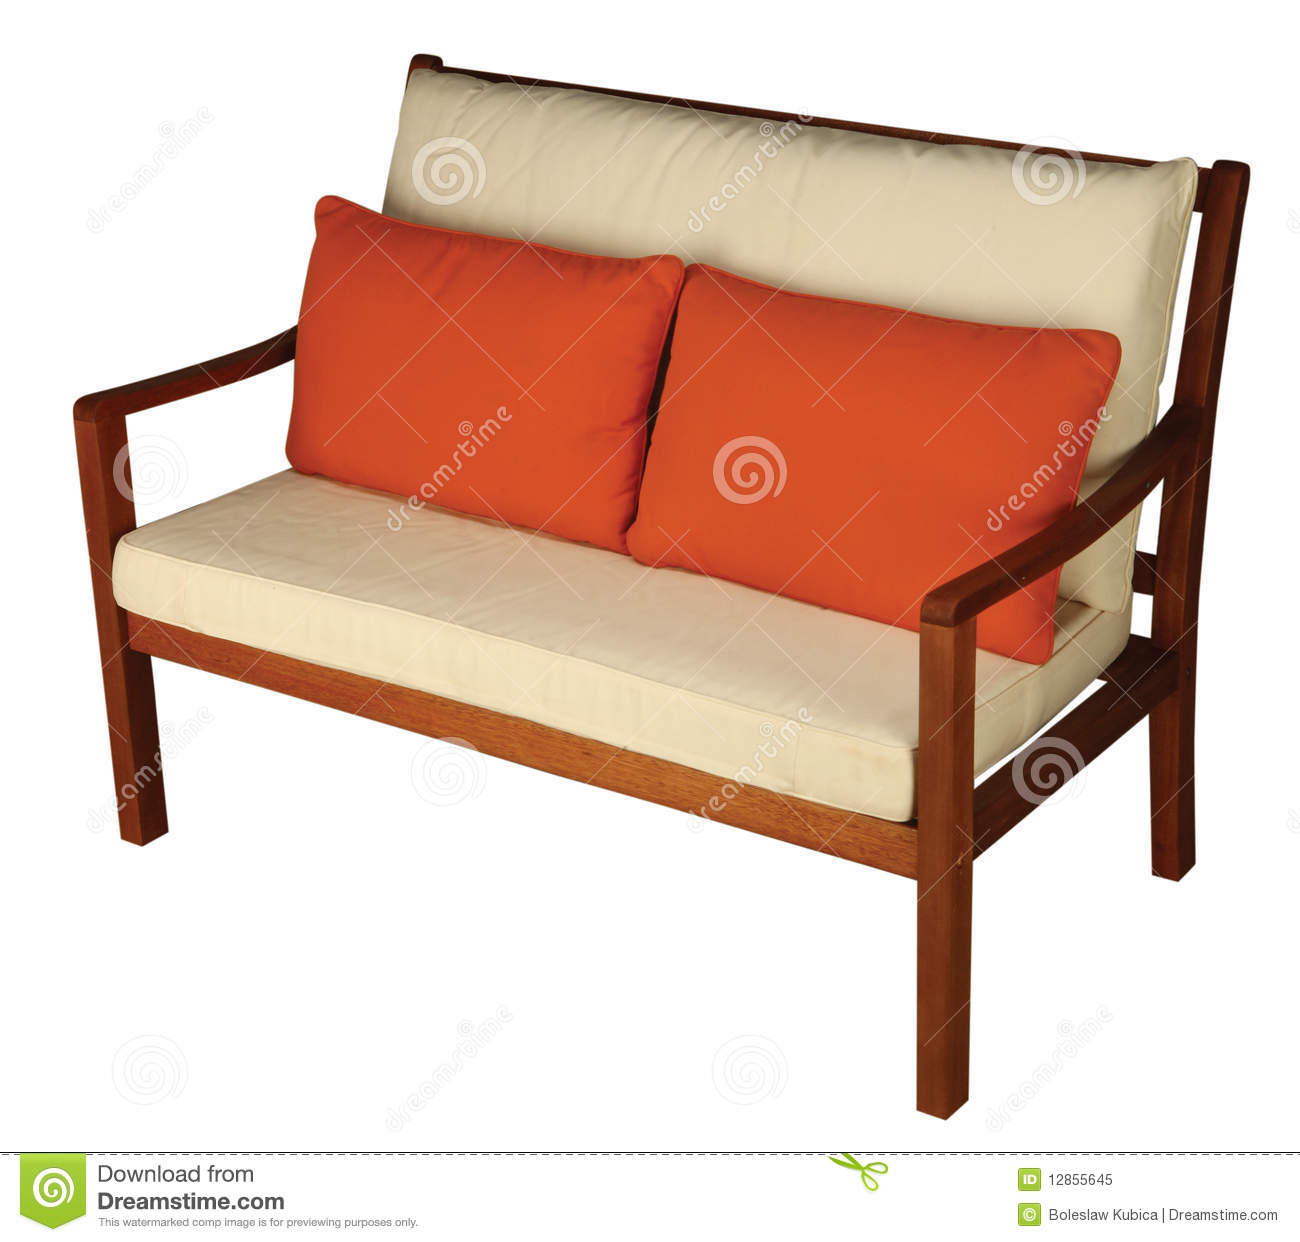 Wooden Sofa With Cushion Royalty Free Stock Photo - Image: 12855645